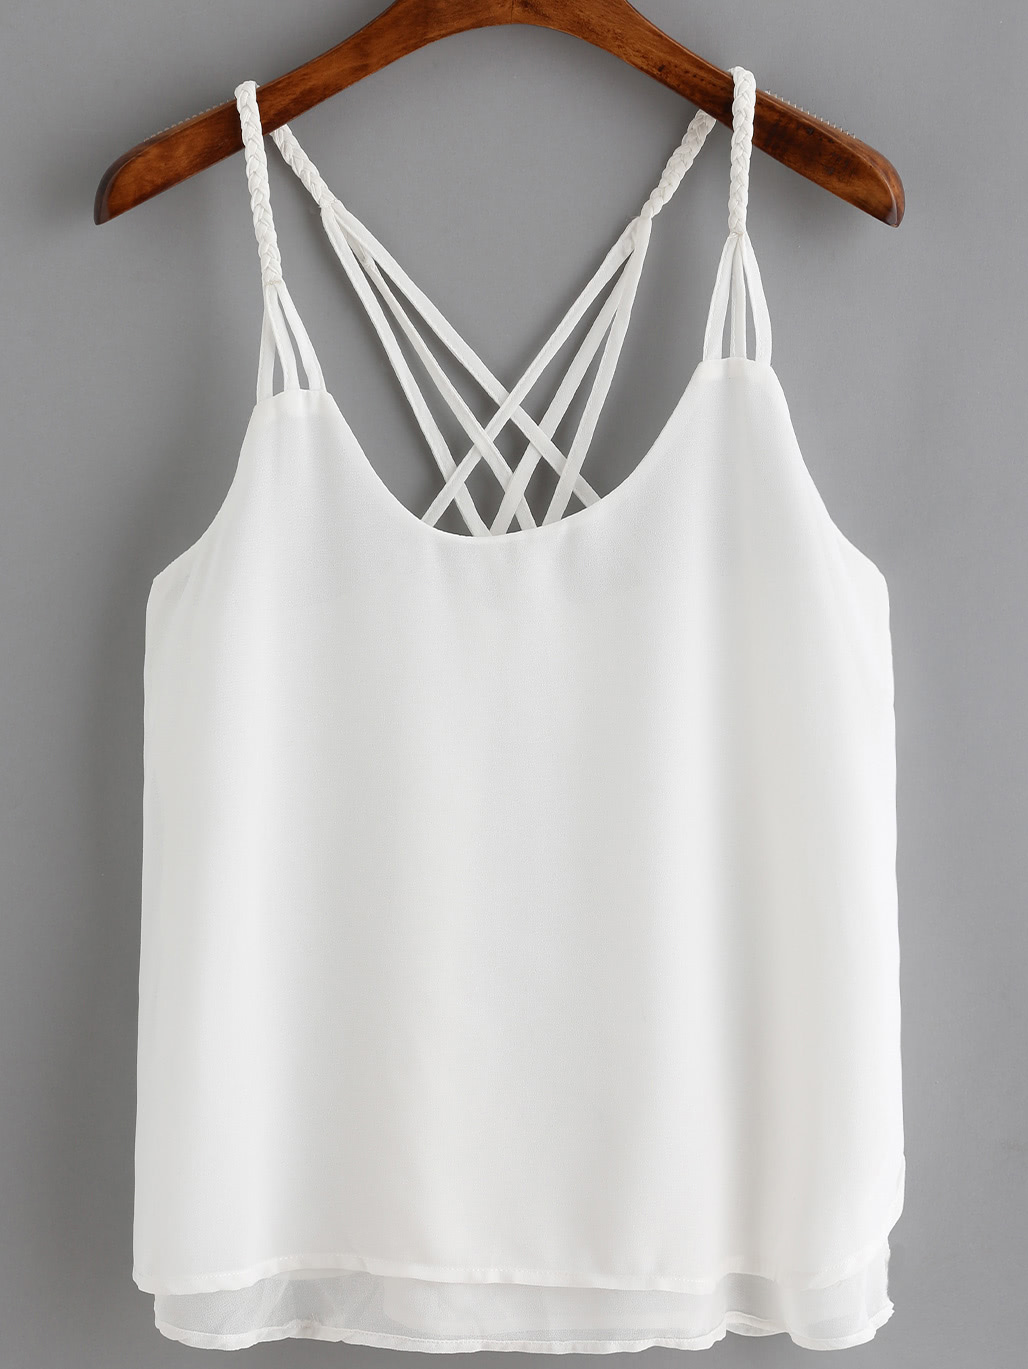 Find great deals on eBay for white spaghetti strap top. Shop with confidence.